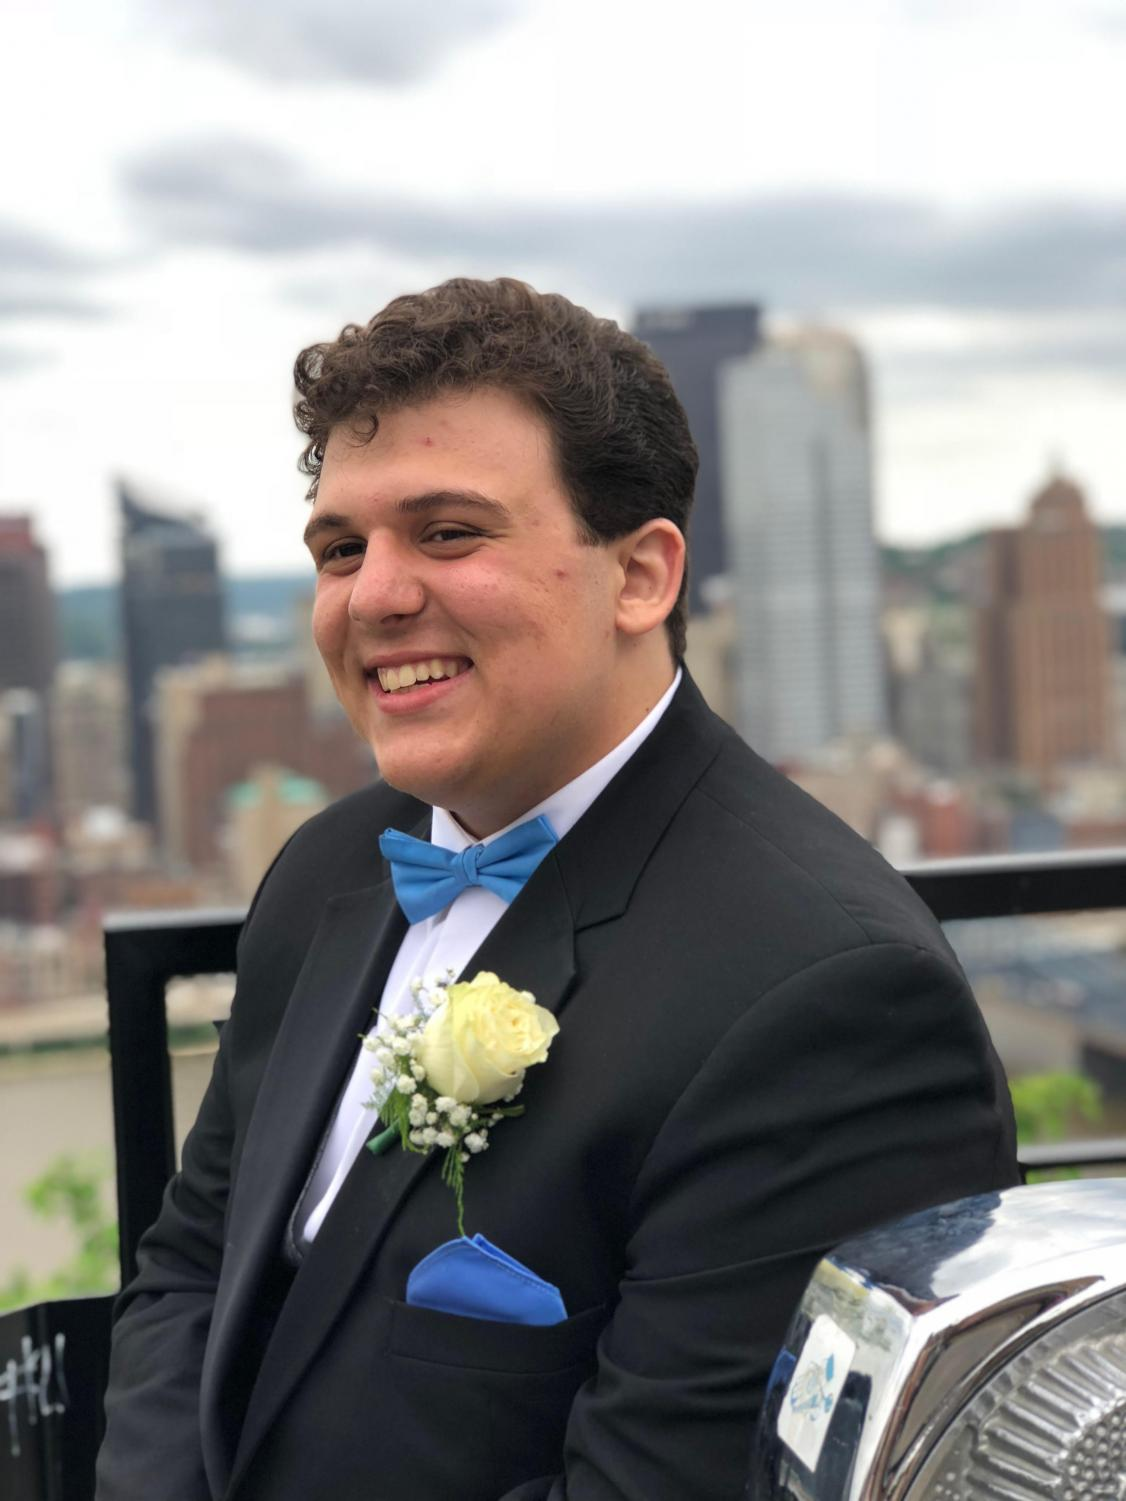 CHEESIN' ON MOUNT WASHINGTON, Ben Hultz smiles for the camera before the 2018 prom.